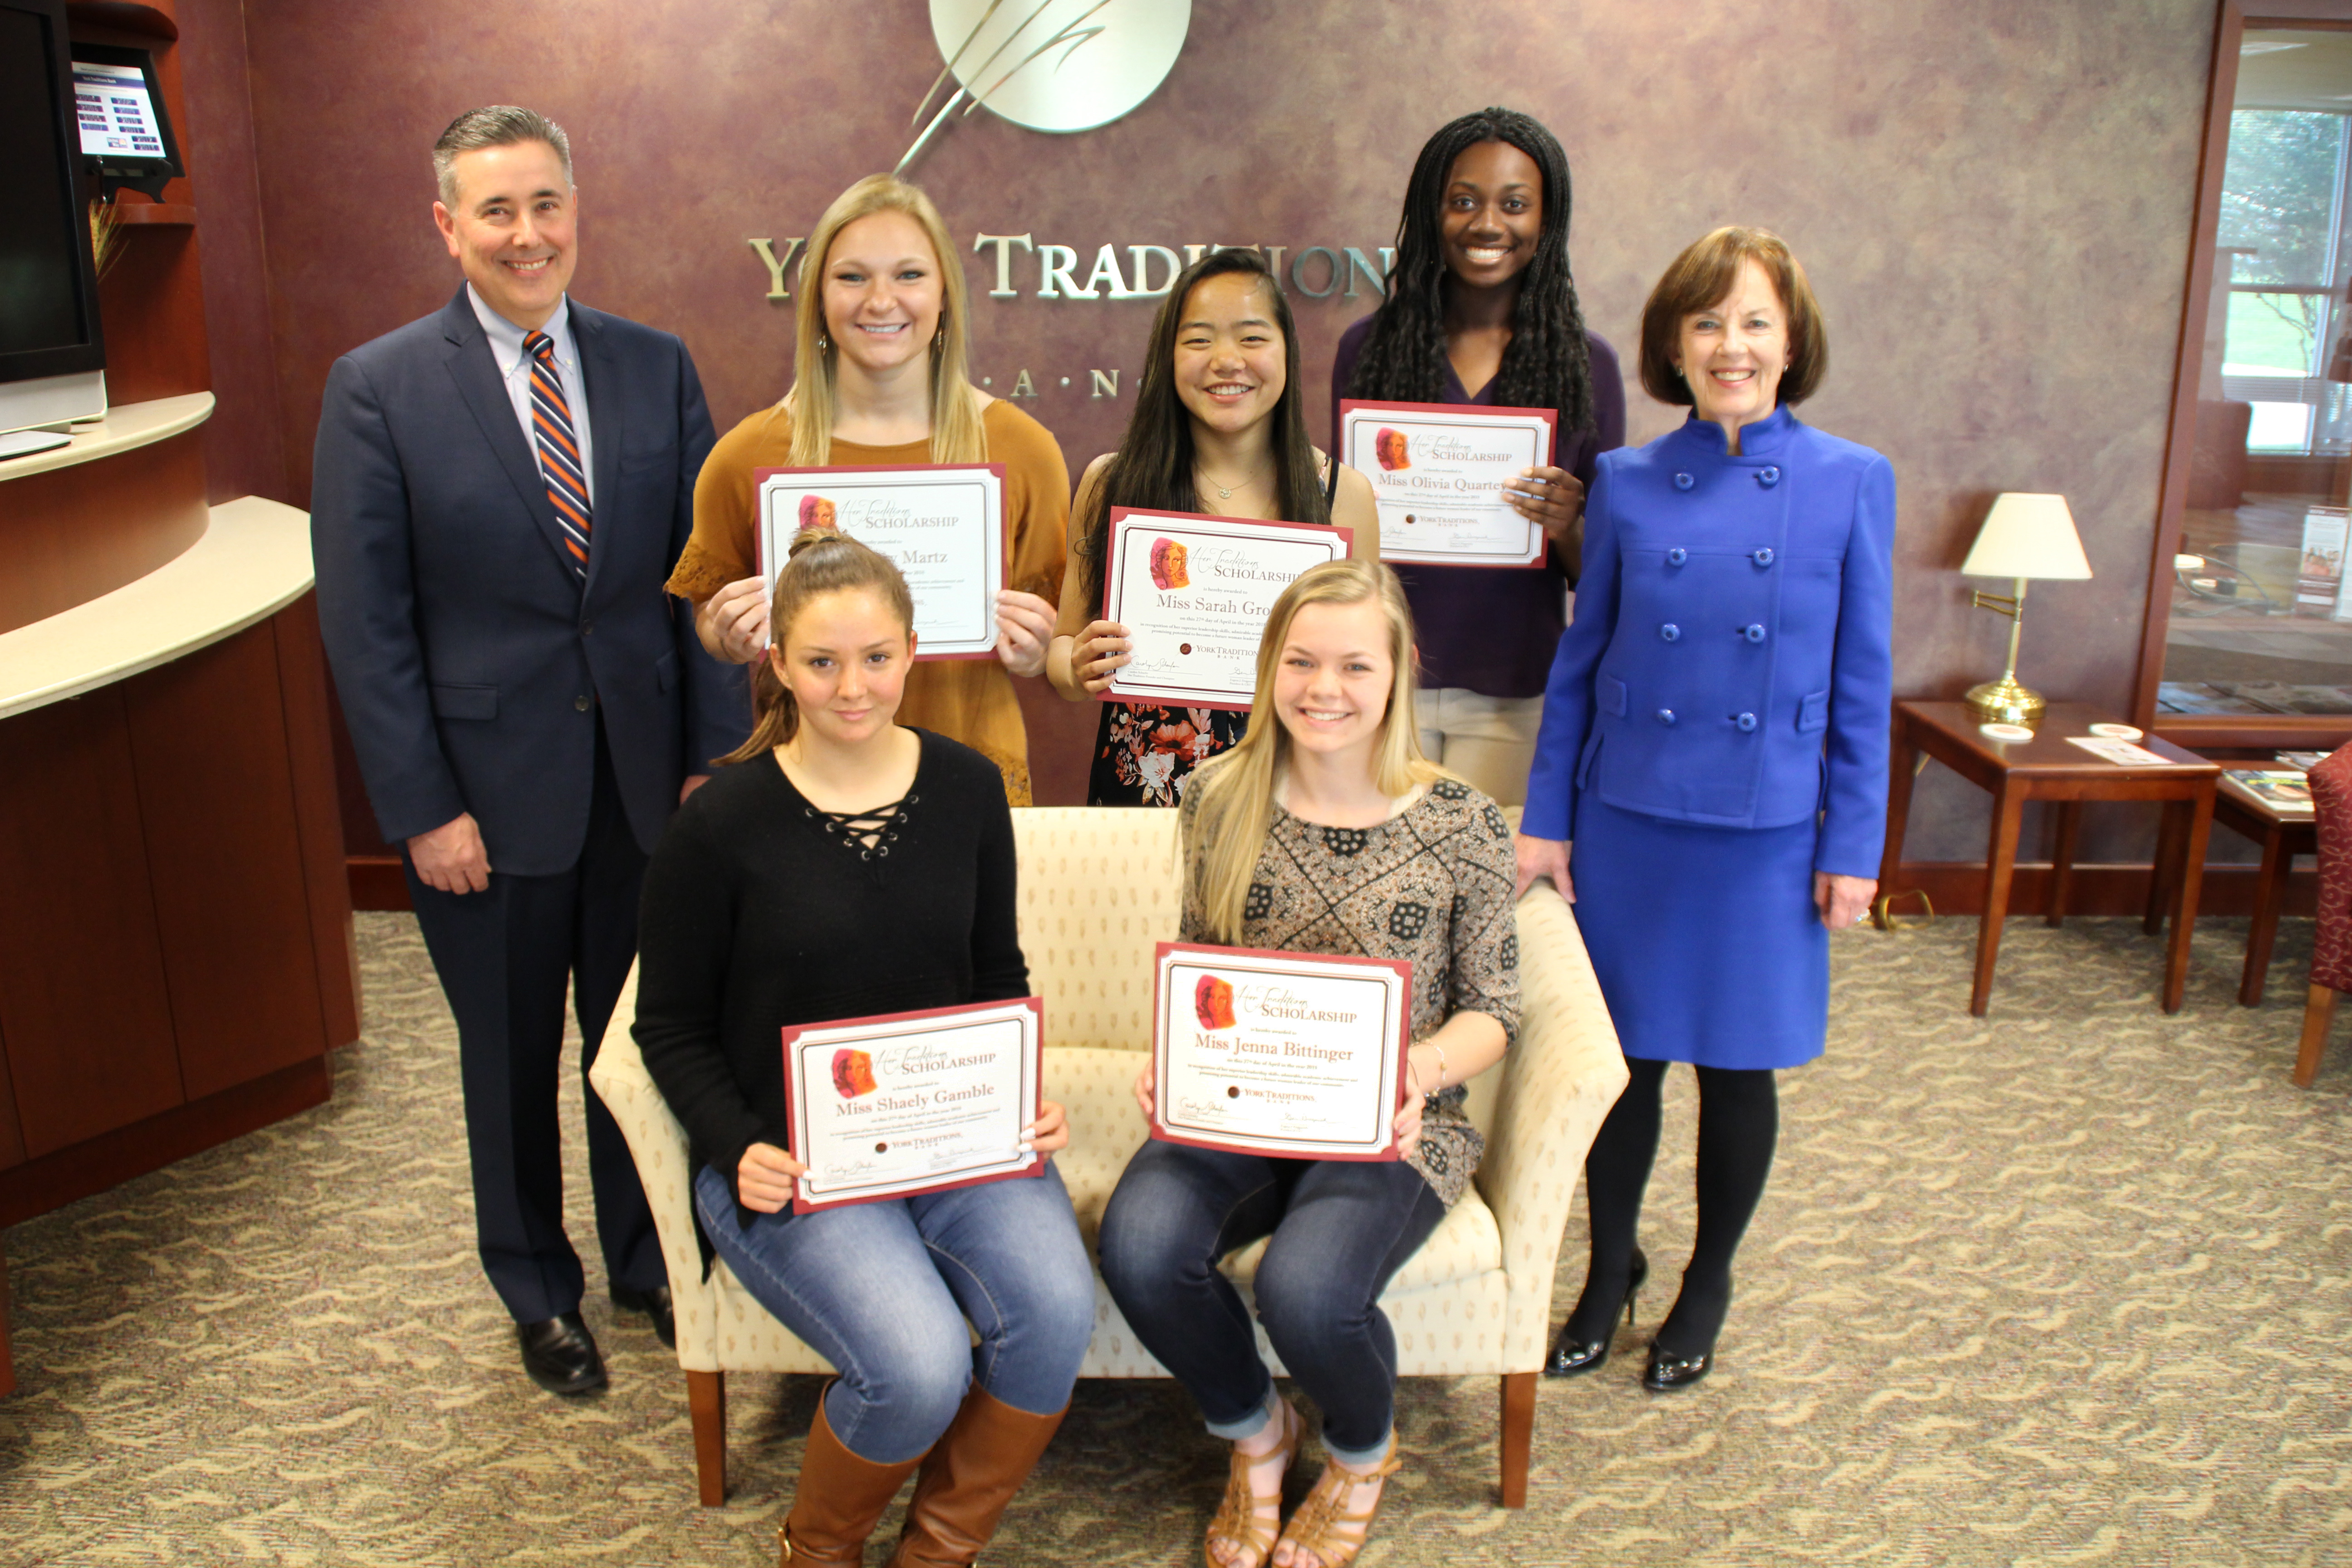 Standing (left to right): Gene Draganosky, President and CEO of York Traditions Bank; Avery Martz, Hanover High School; Sarah Groetz, Dallastown Area High School; Olivia Quartey, Central York High School; Carolyn Schaefer, Her Traditions Founder and Champion; Seated (left to right): Shaely Gamble,  Dover Area High School; Jenna Bittinger, Northern High School.